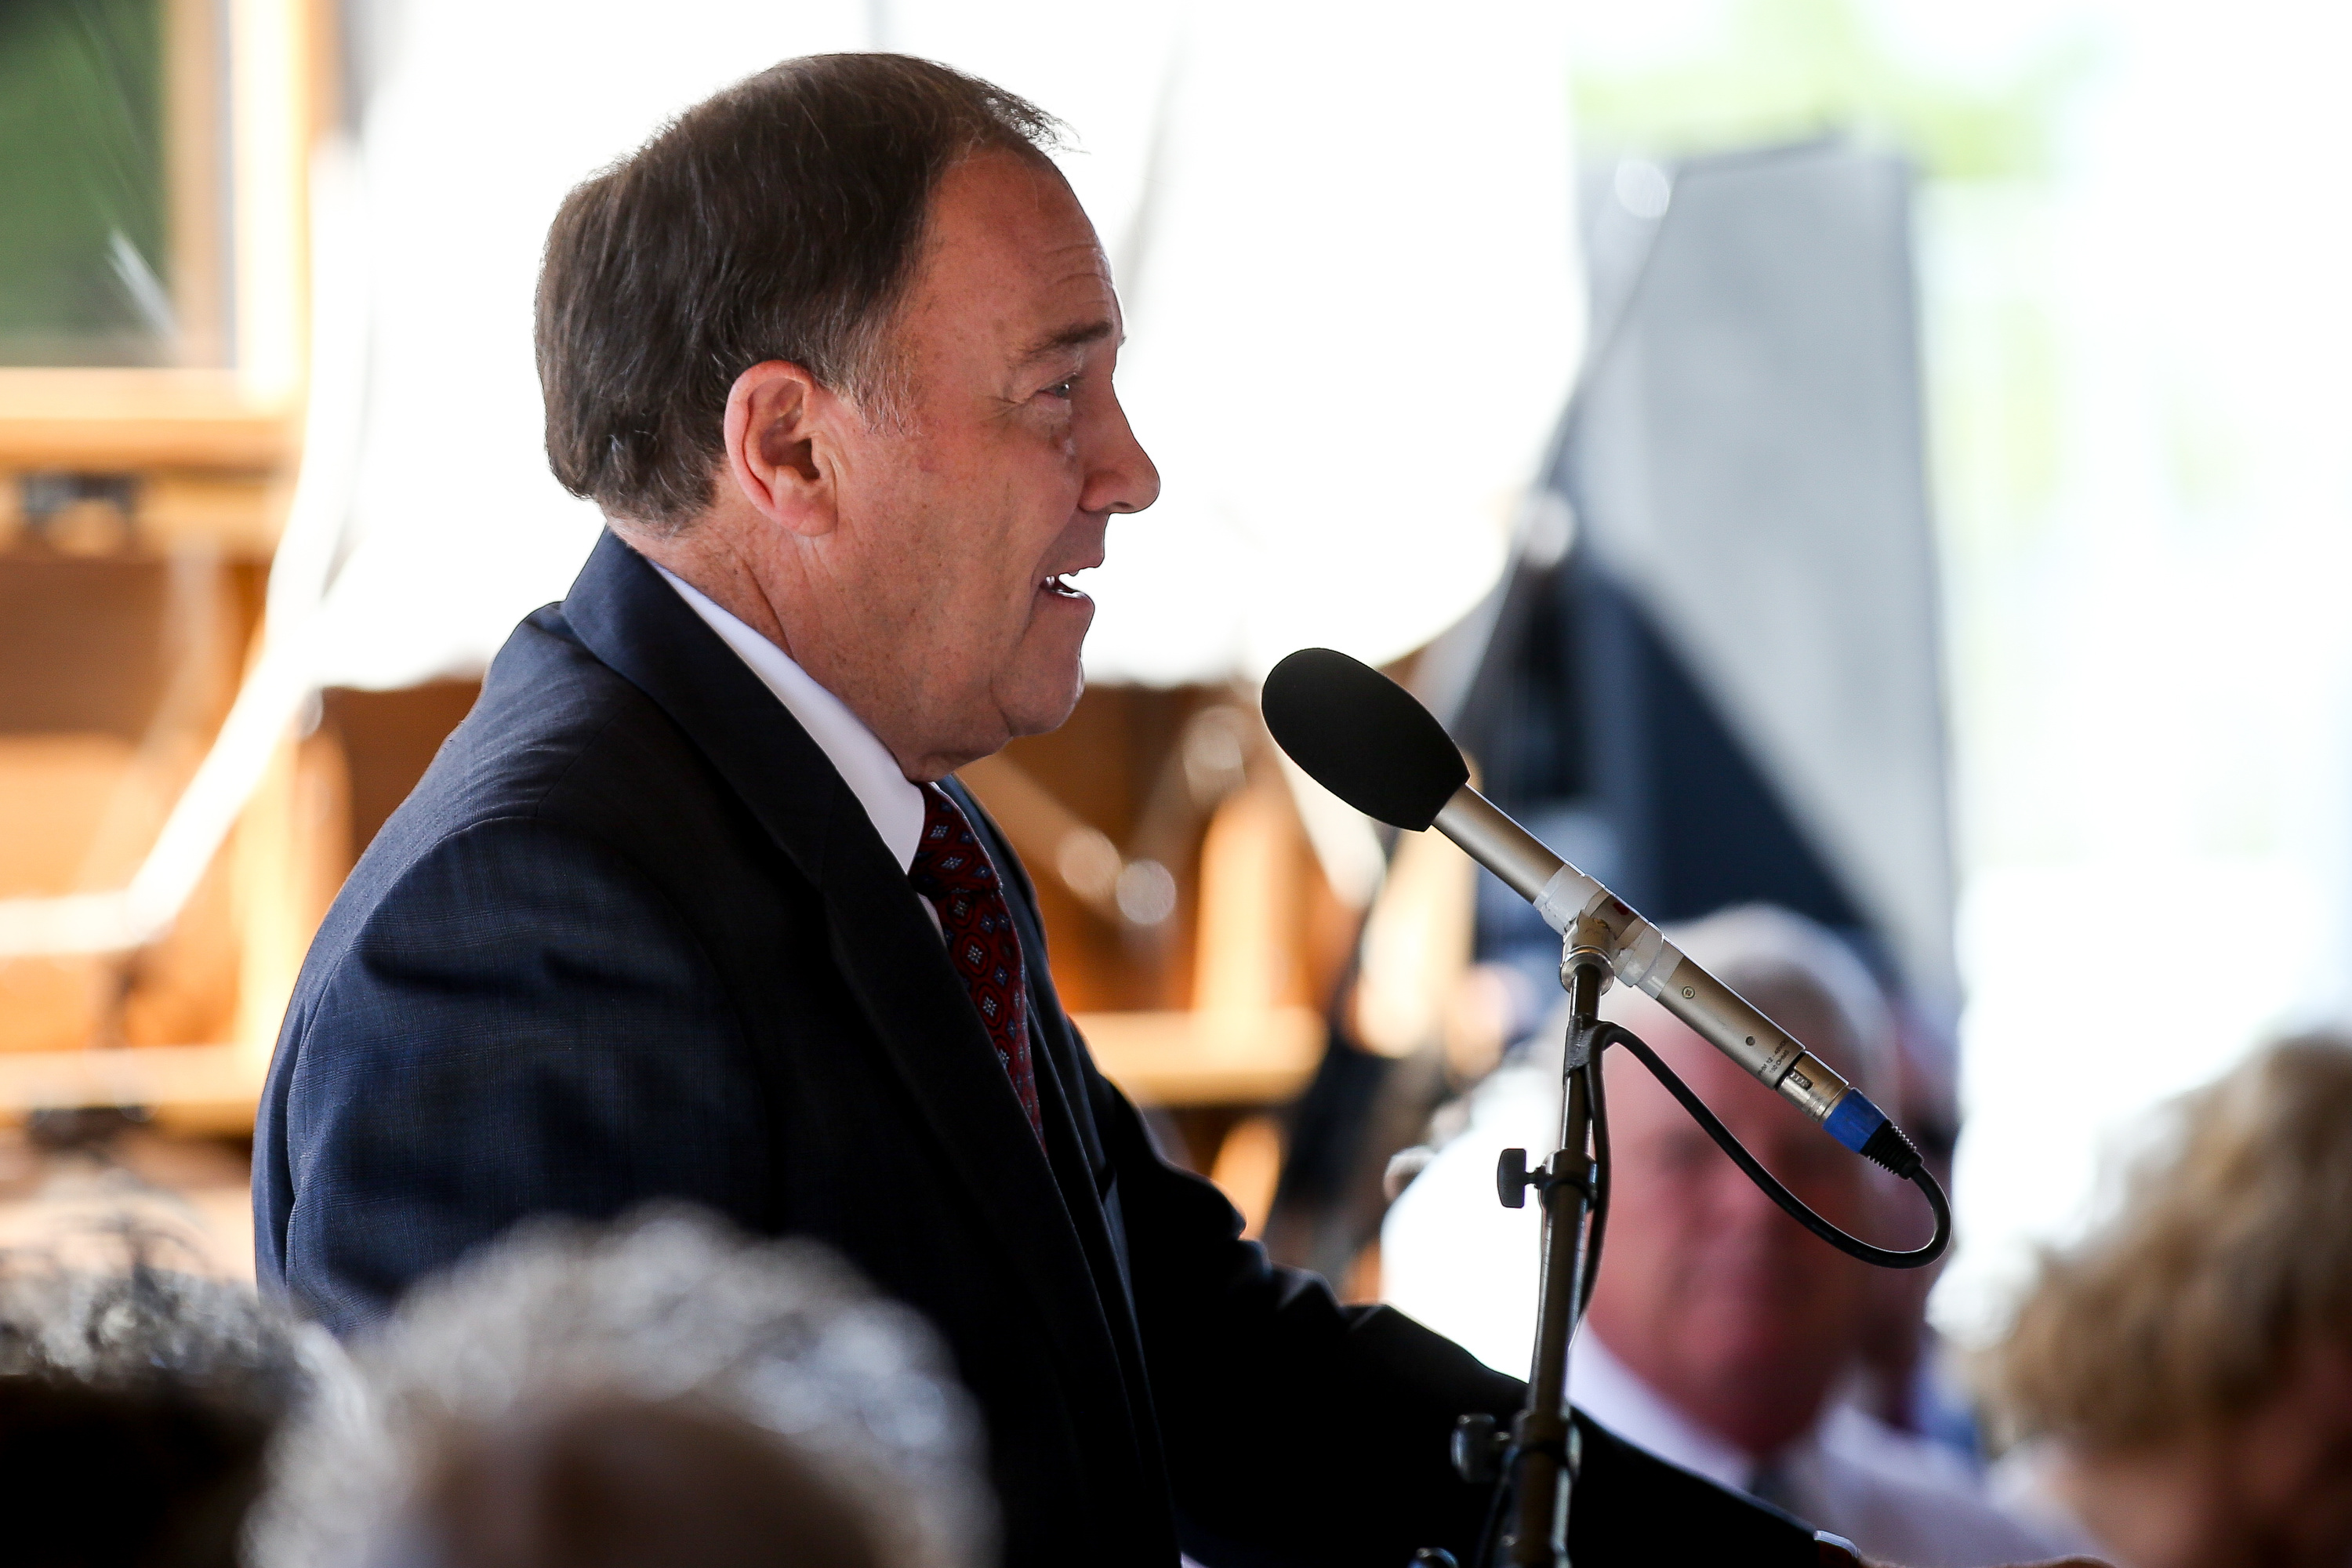 Gov. Gary Herbert speaks at the dedication of the Children's Pioneer Memorial at This Is the Place Heritage Park in Salt Lake City on Saturday, July 20, 2019.